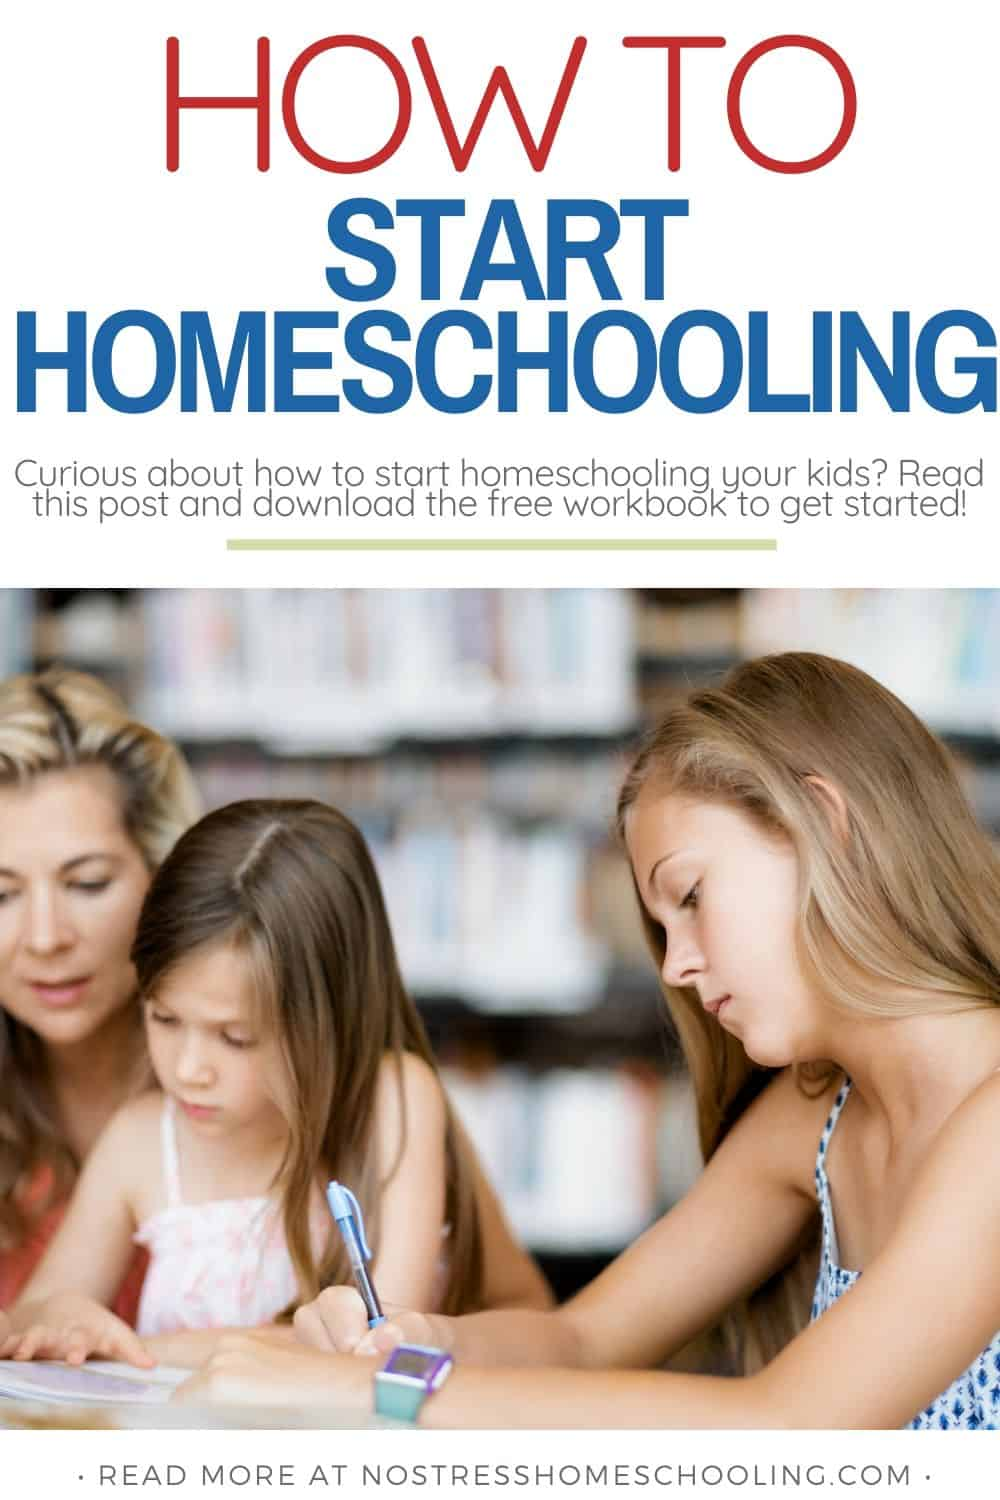 PIC SHOWINGHOW TO START HOMESCHOOLING YOUR KIDS